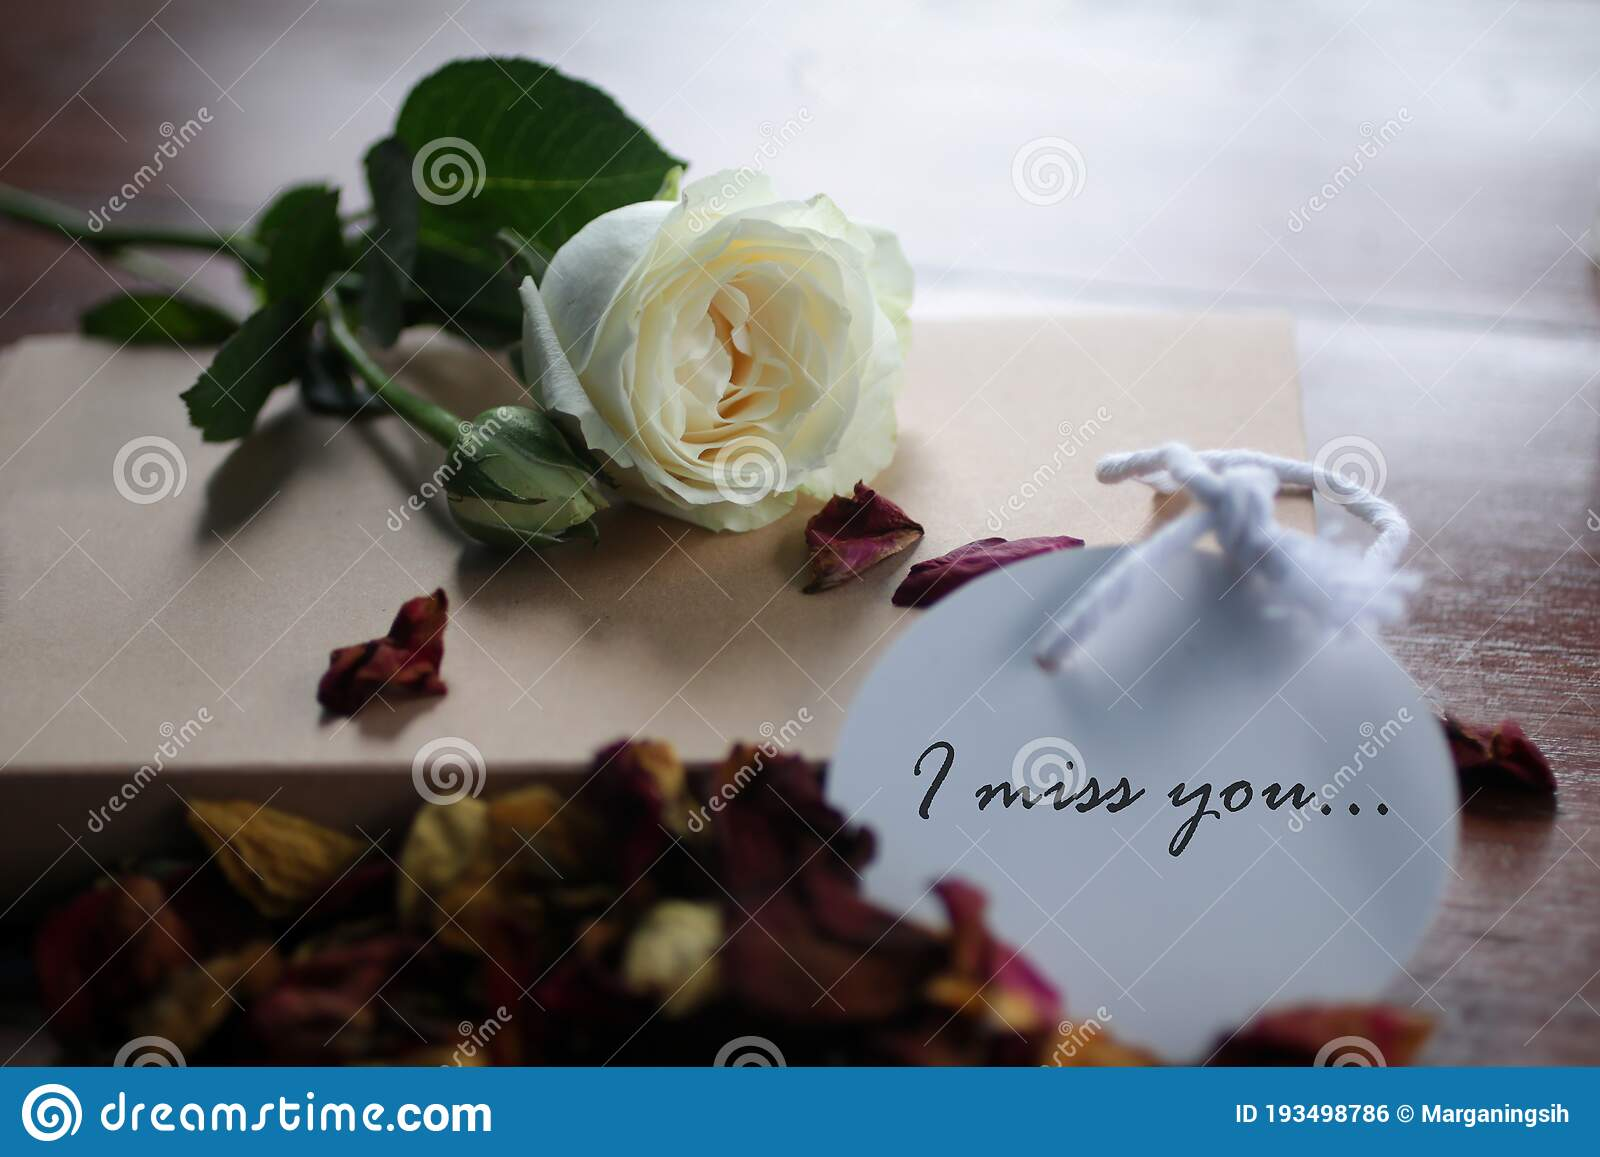 I Miss You Romantic Note Message Written On White Paper Tag Label With Background Of White Rose Lying And Dried Petals Scattered Stock Photo Image Of Composition Important 193498786